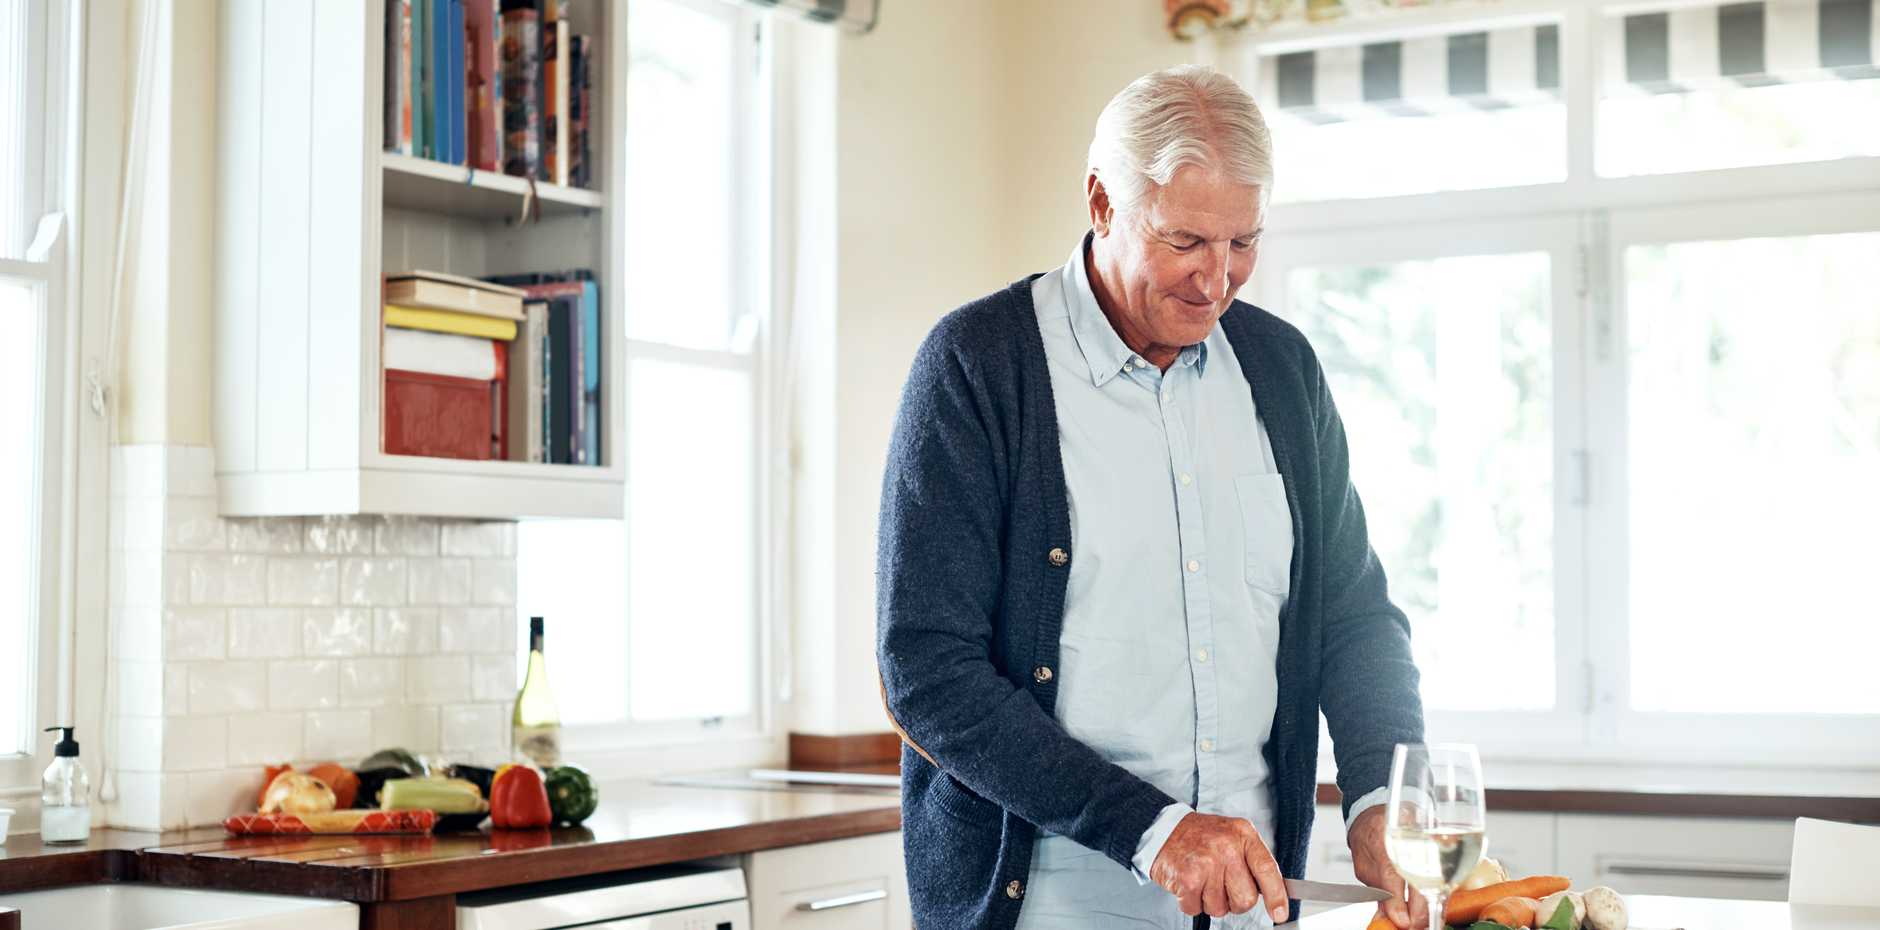 EASY EATING: Relax around the kitchen with these great tips.